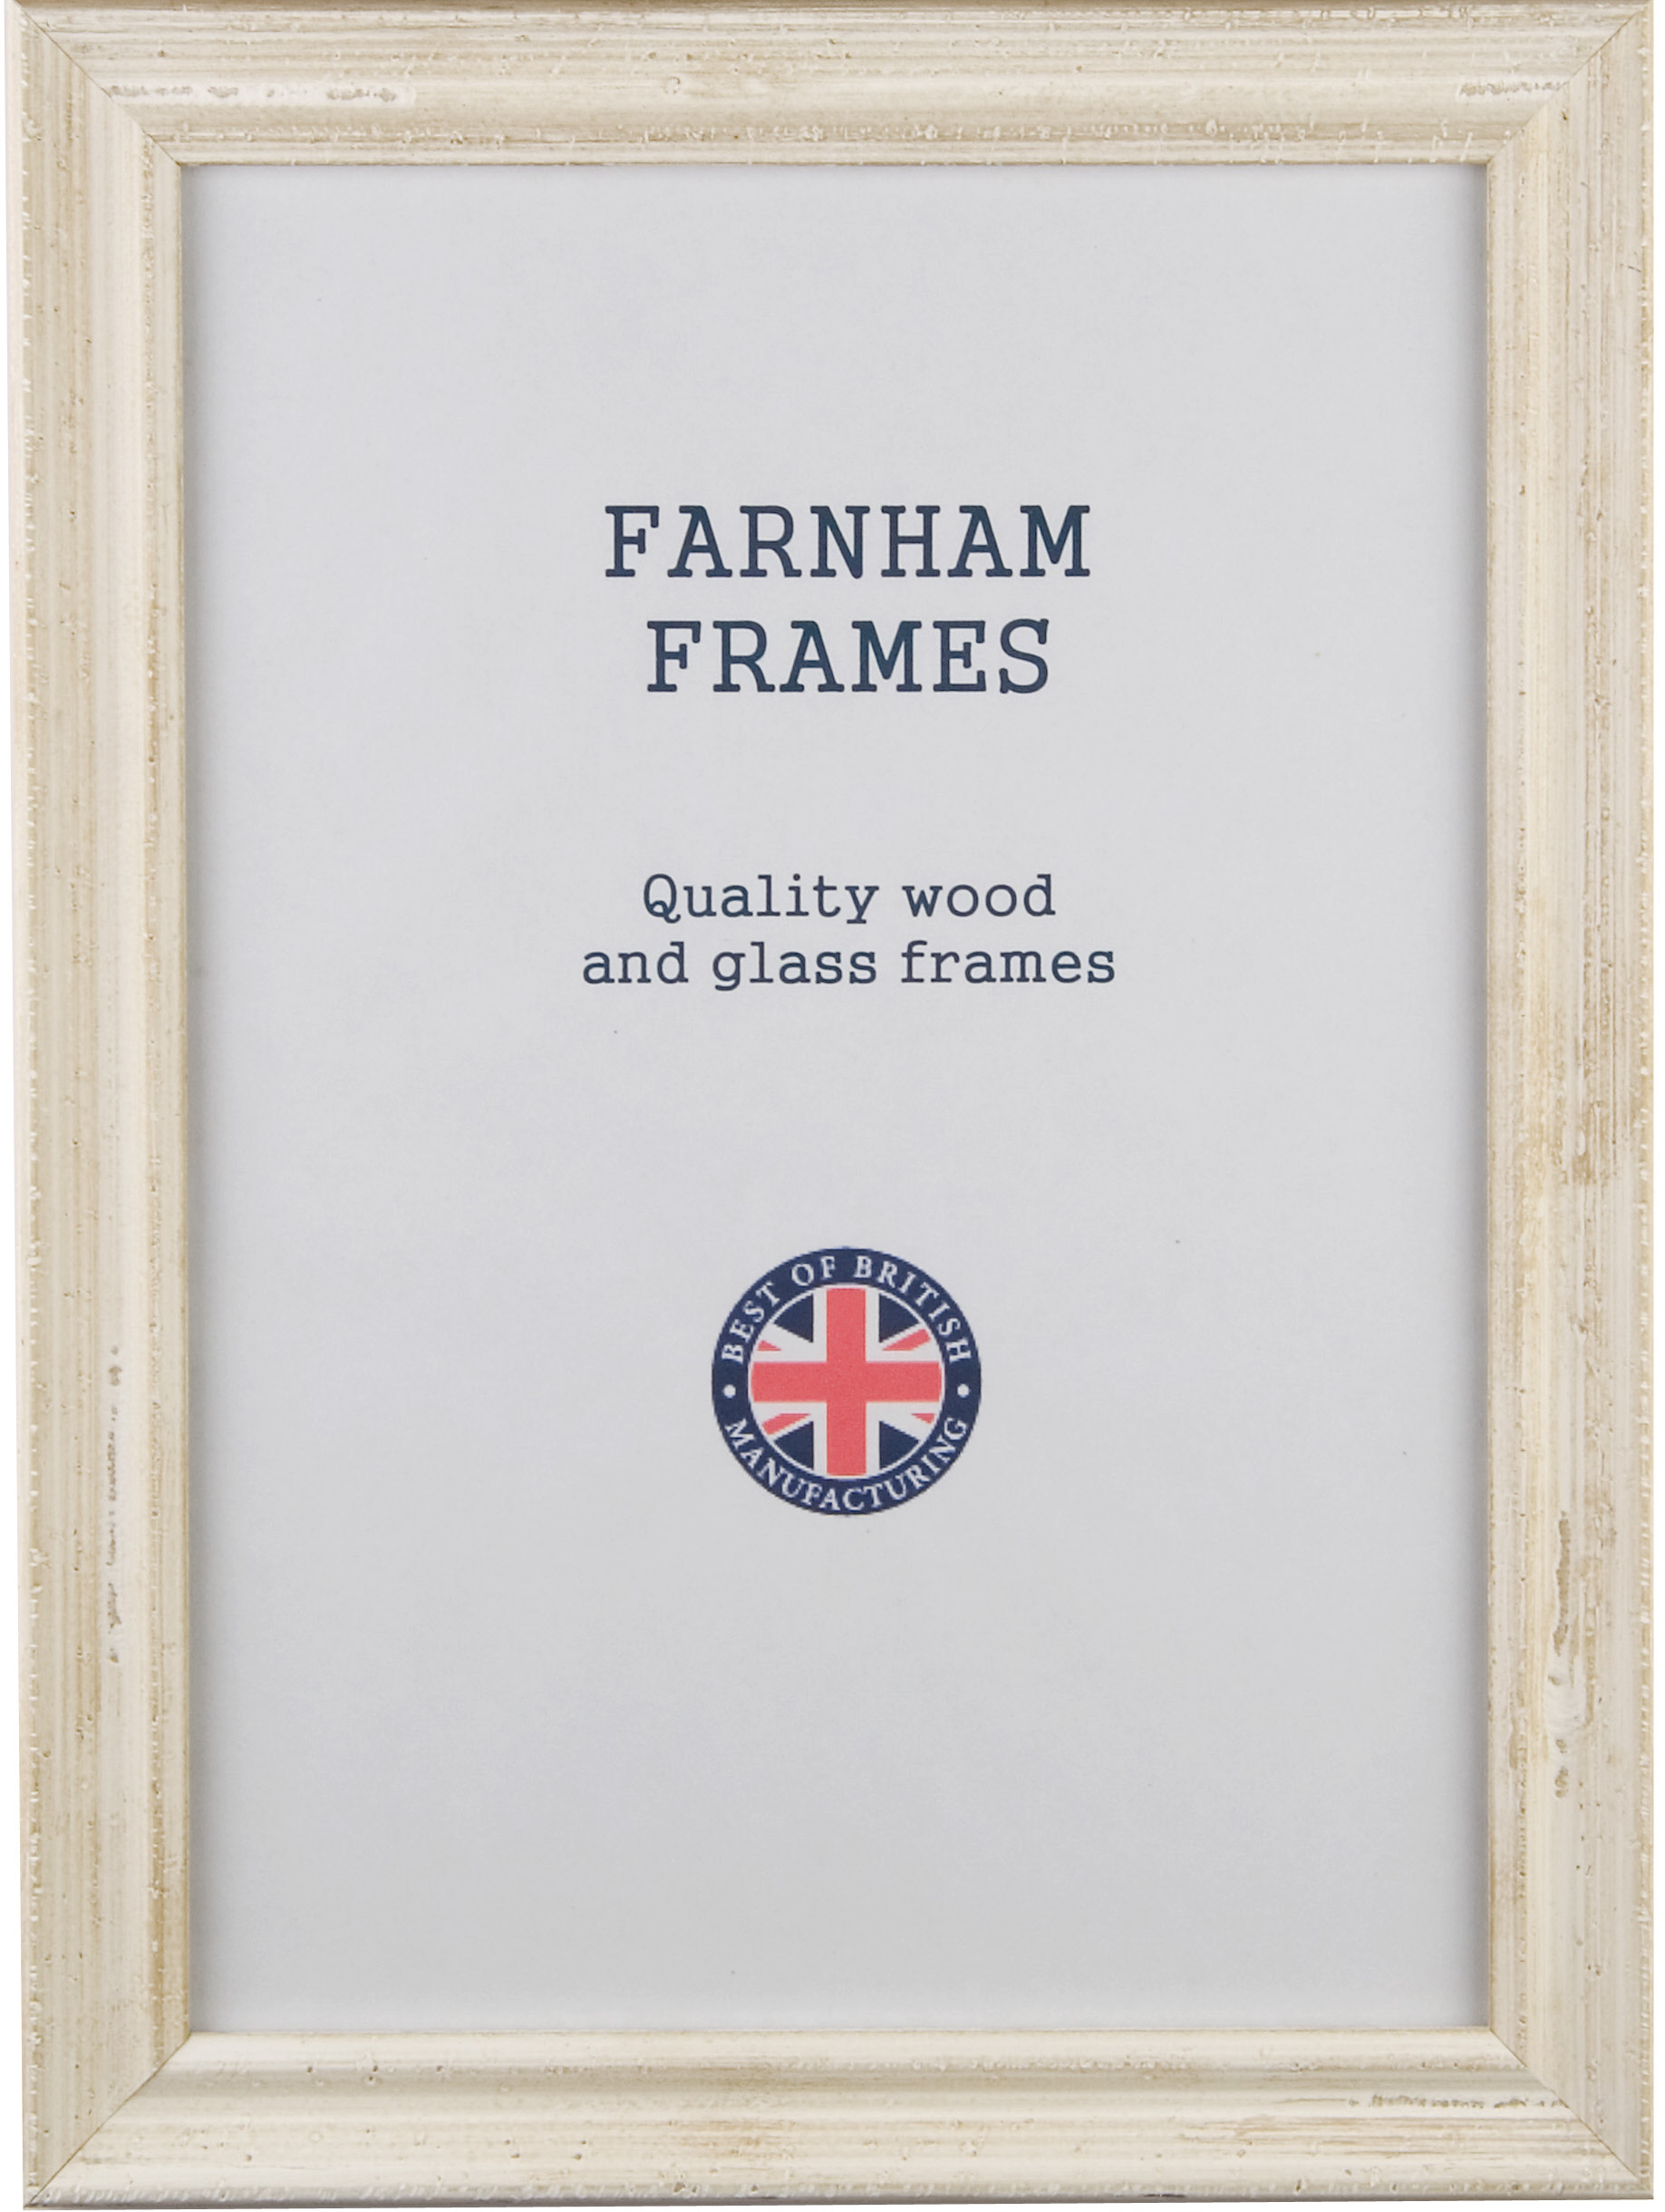 12x10 inch distressed white wood frames at Farnham Frames | British ...